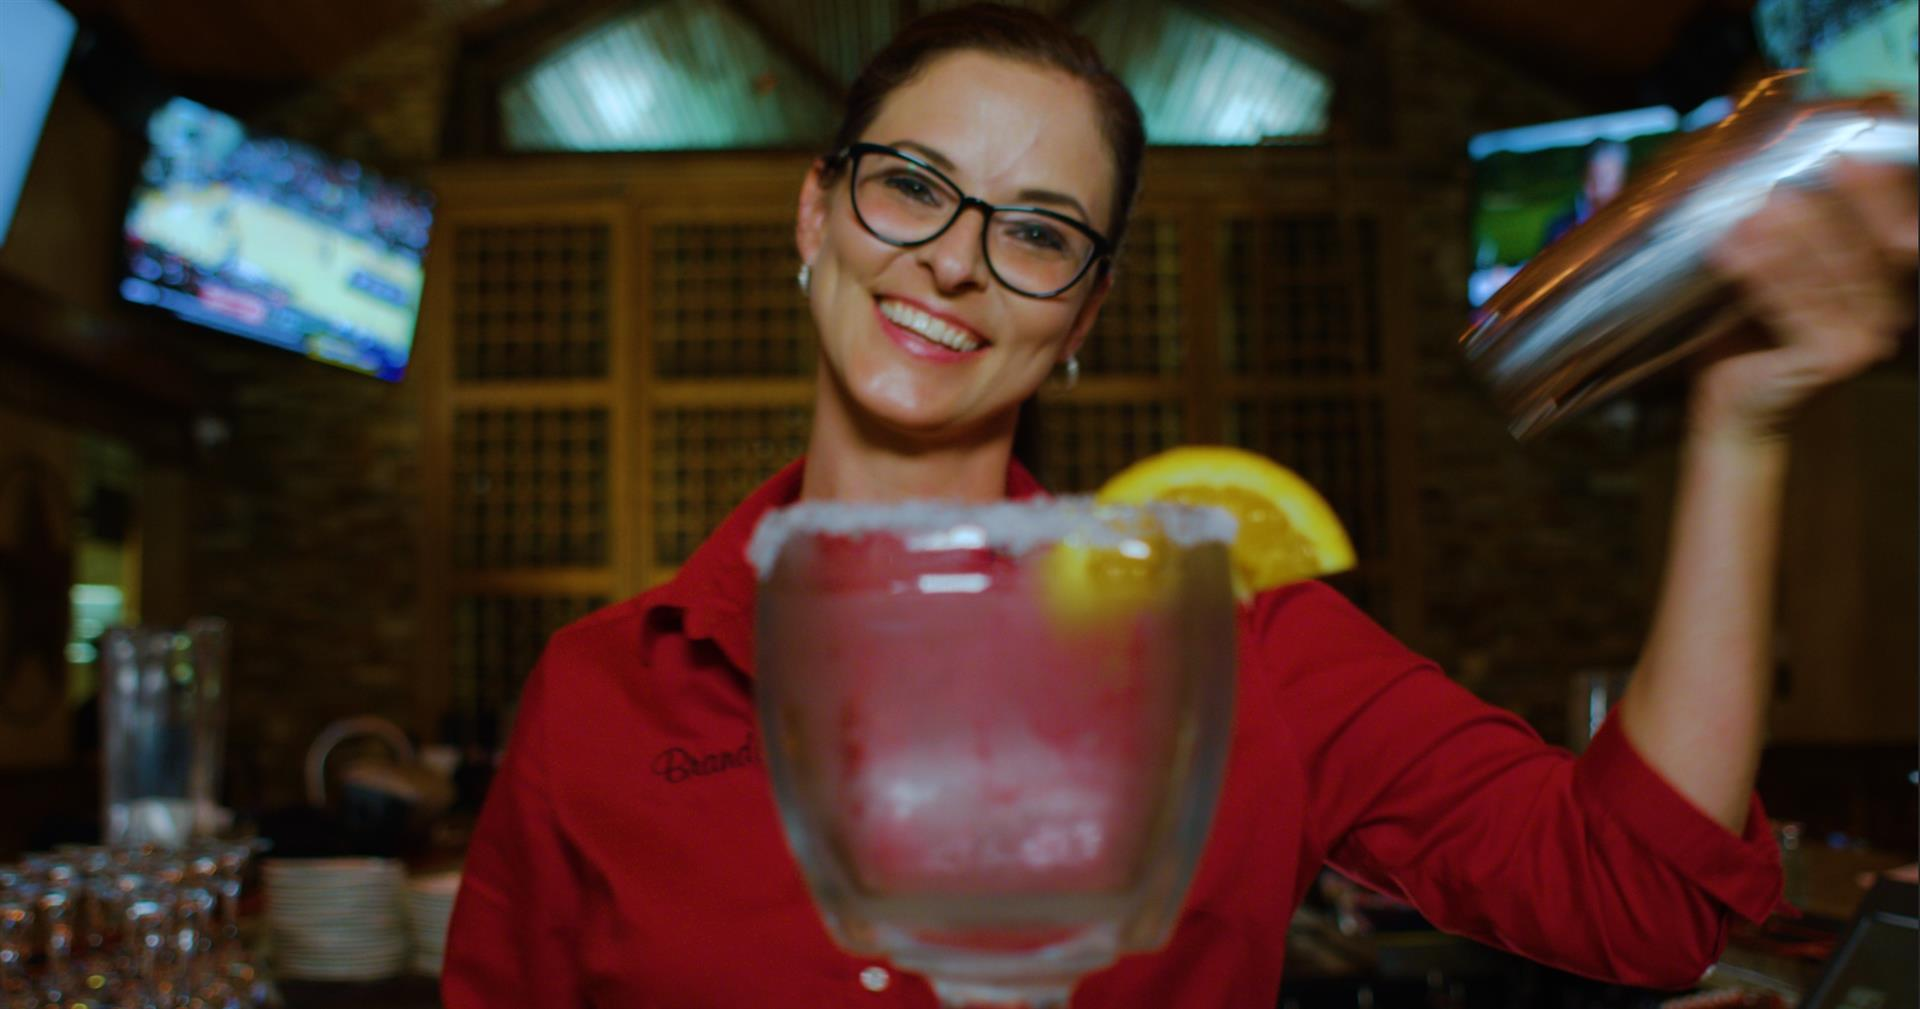 waitress smiling while handing over a margarita